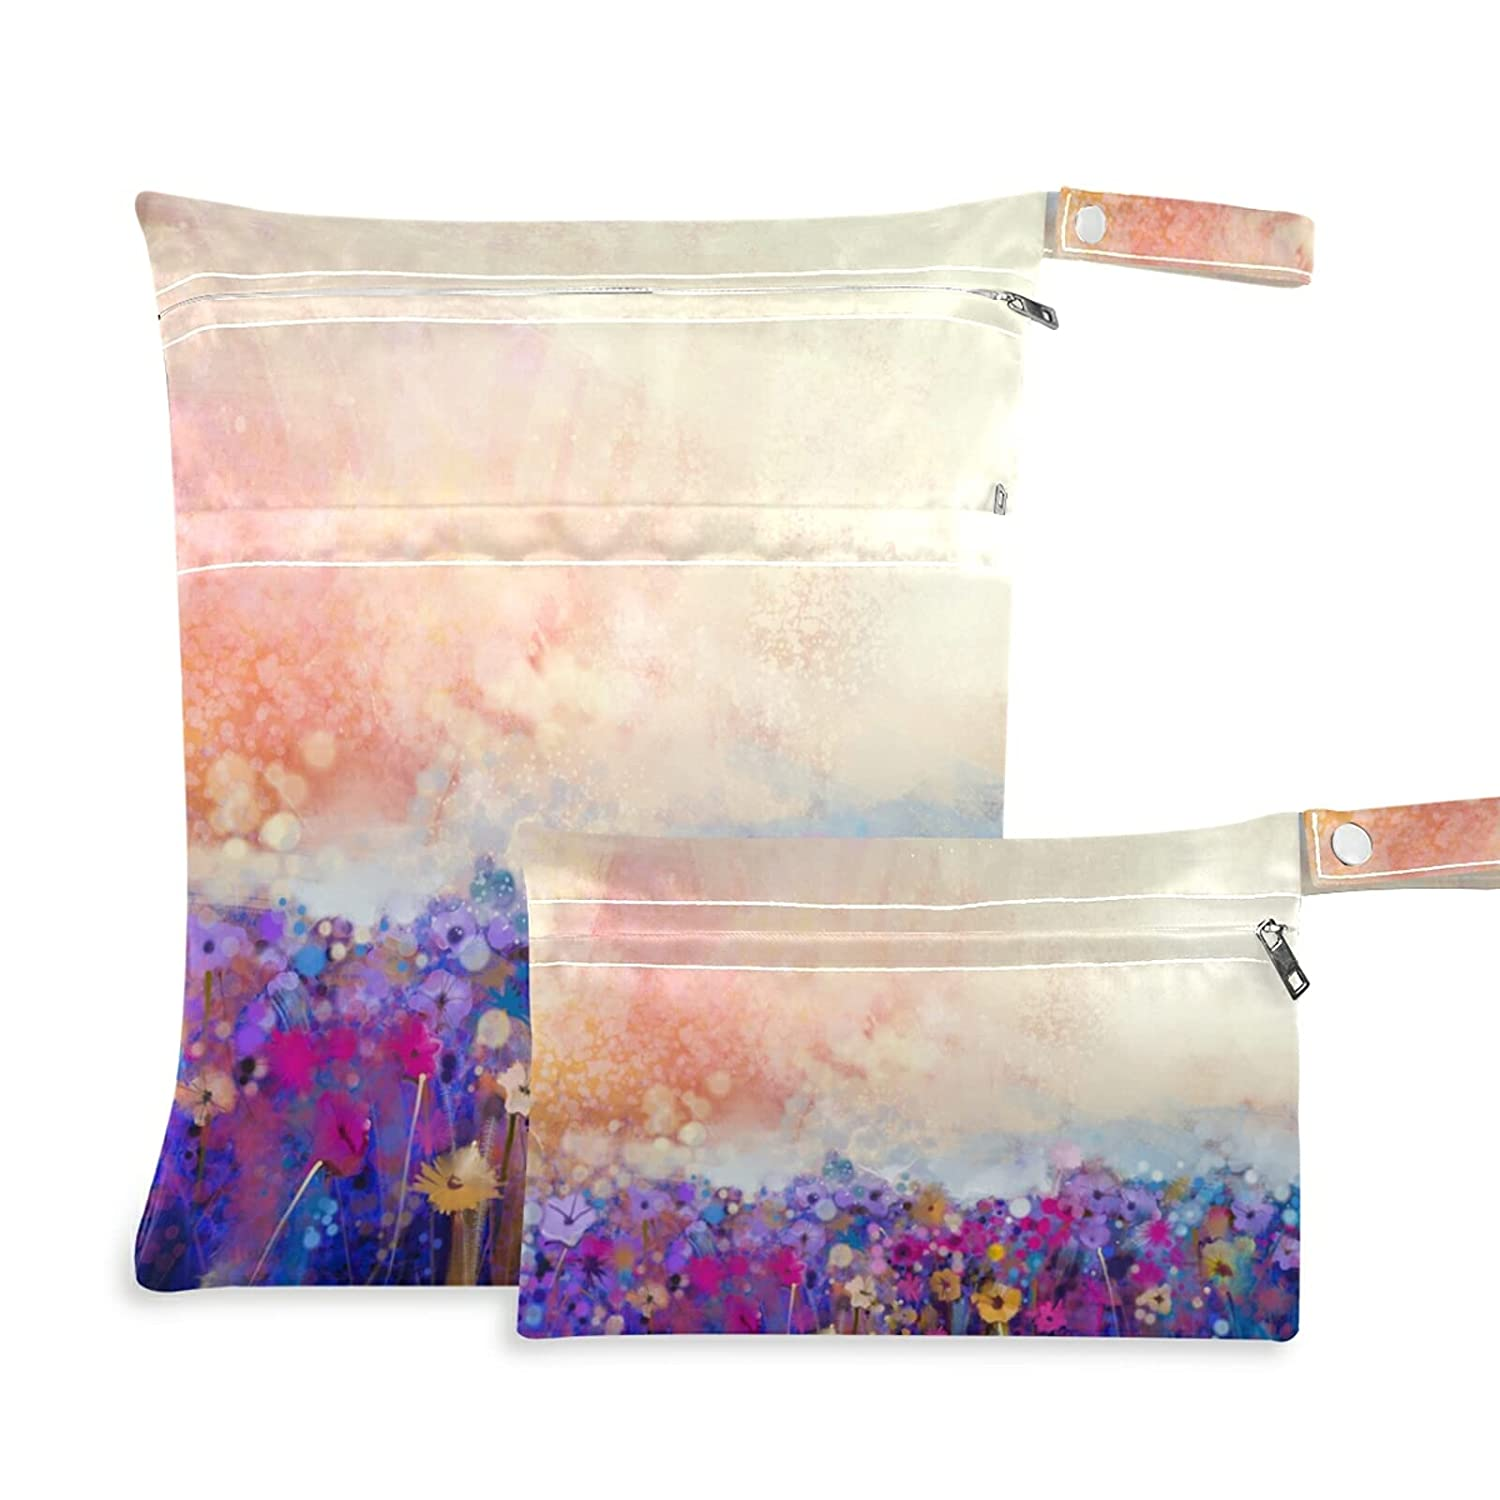 xigua Floral Watercolor Painting Bombing free shipping Wet 2 Dry Bag Popular brand Pieces Waterproo